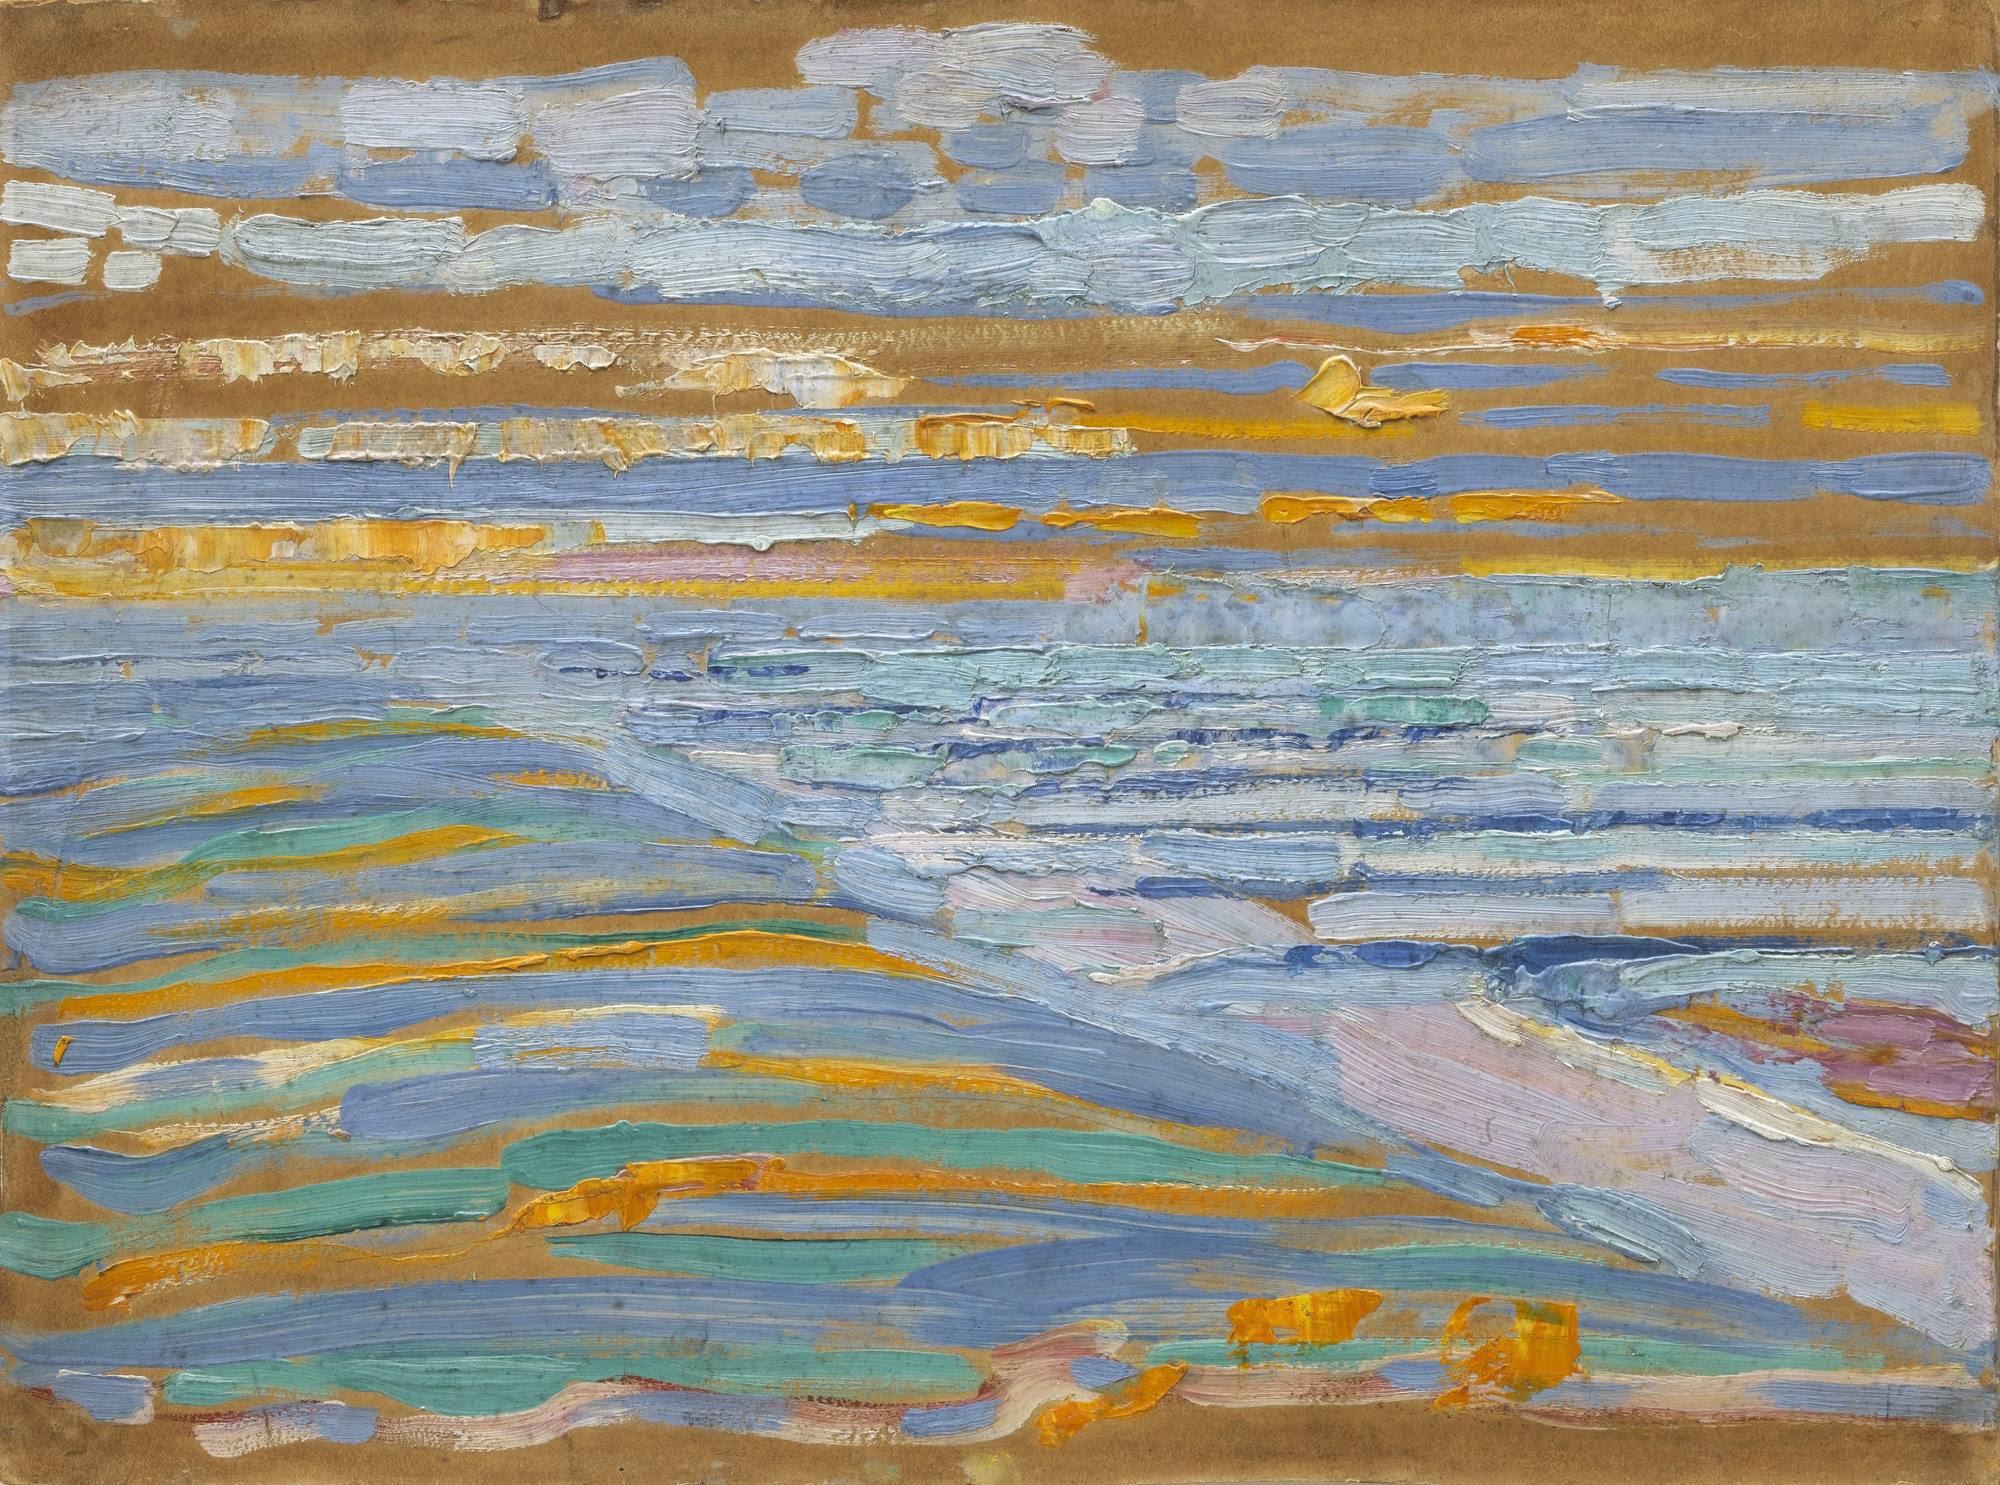 Piet Mondrian. View from the Dunes with Beach and Piers, Domburg. 1909